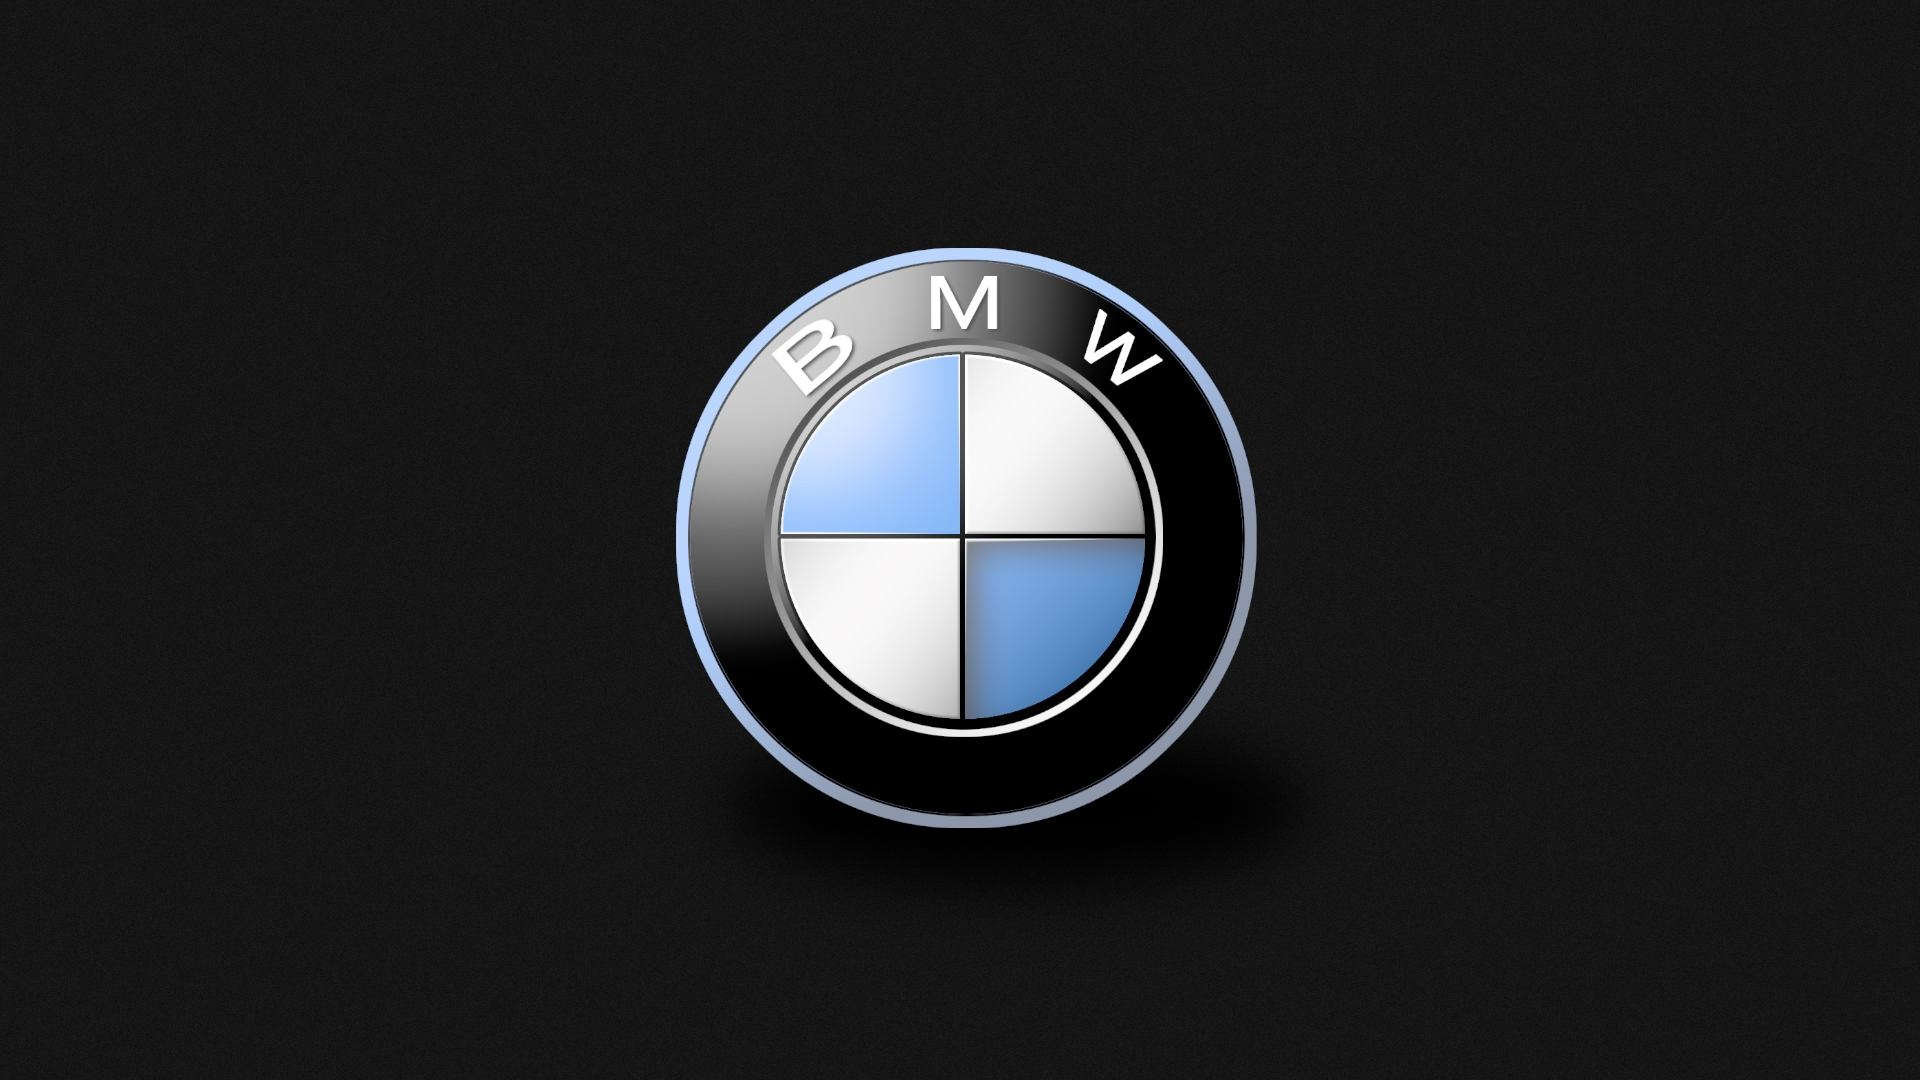 Bmw logo   High Definition Wallpapers   HD wallpapers 1920x1080